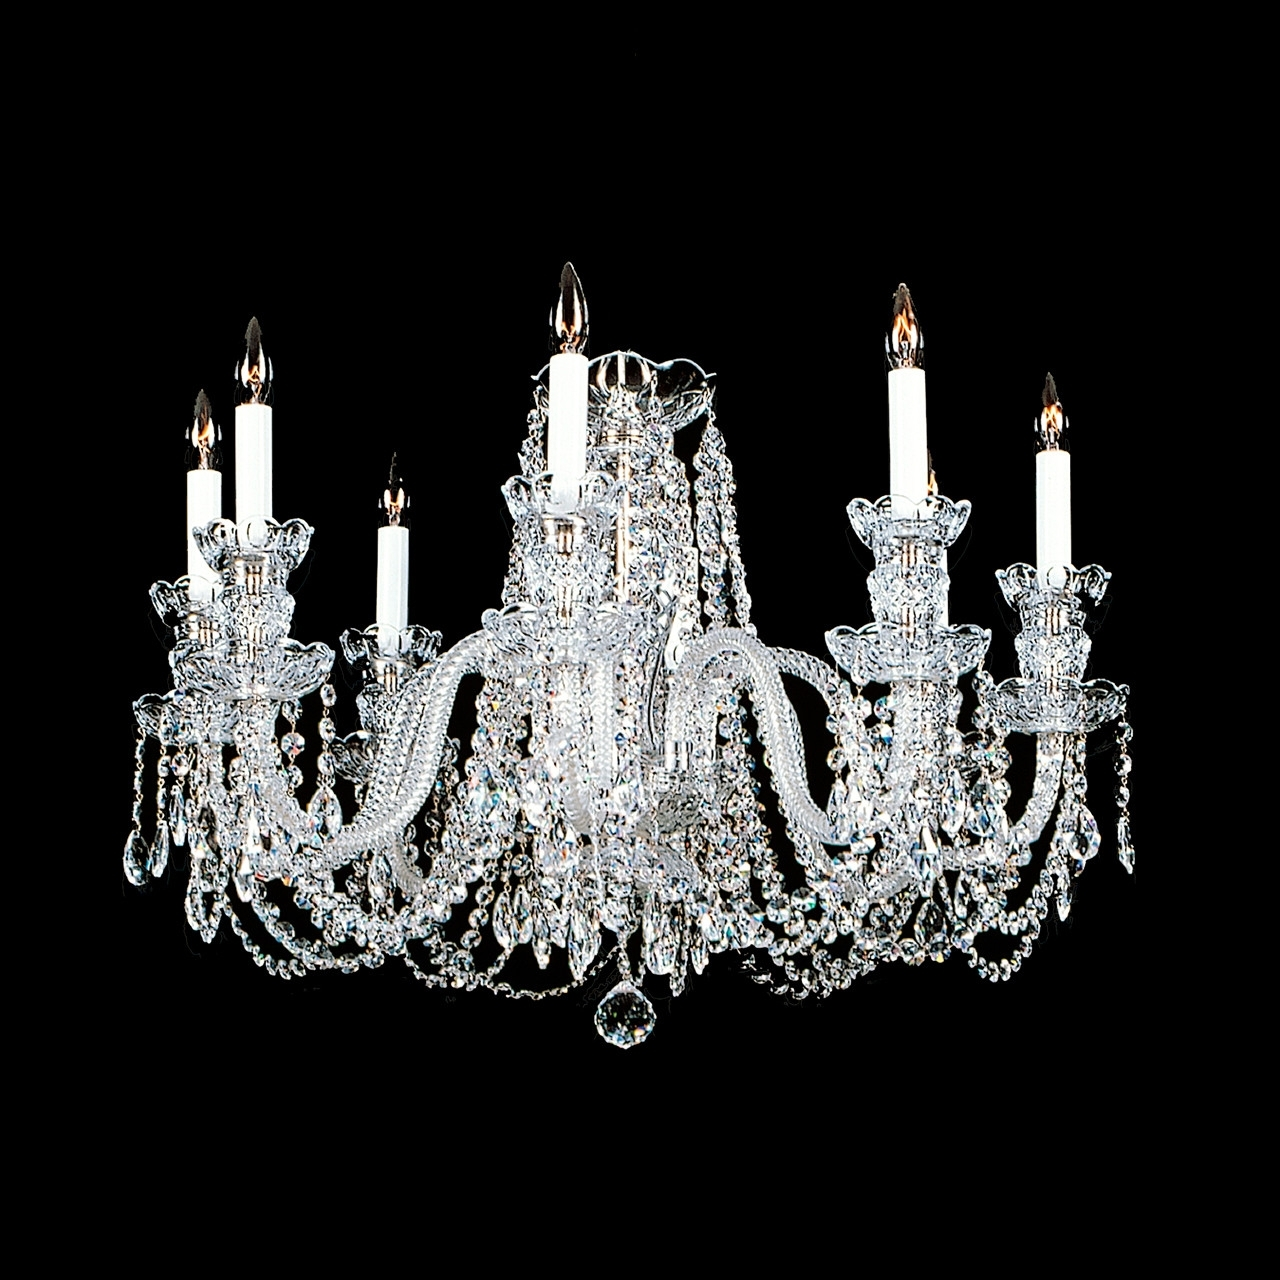 Short Chandeliers Within Most Recently Released Crystal Chandelier Category : Swarovski Crystal Chandelier Mini (View 12 of 15)